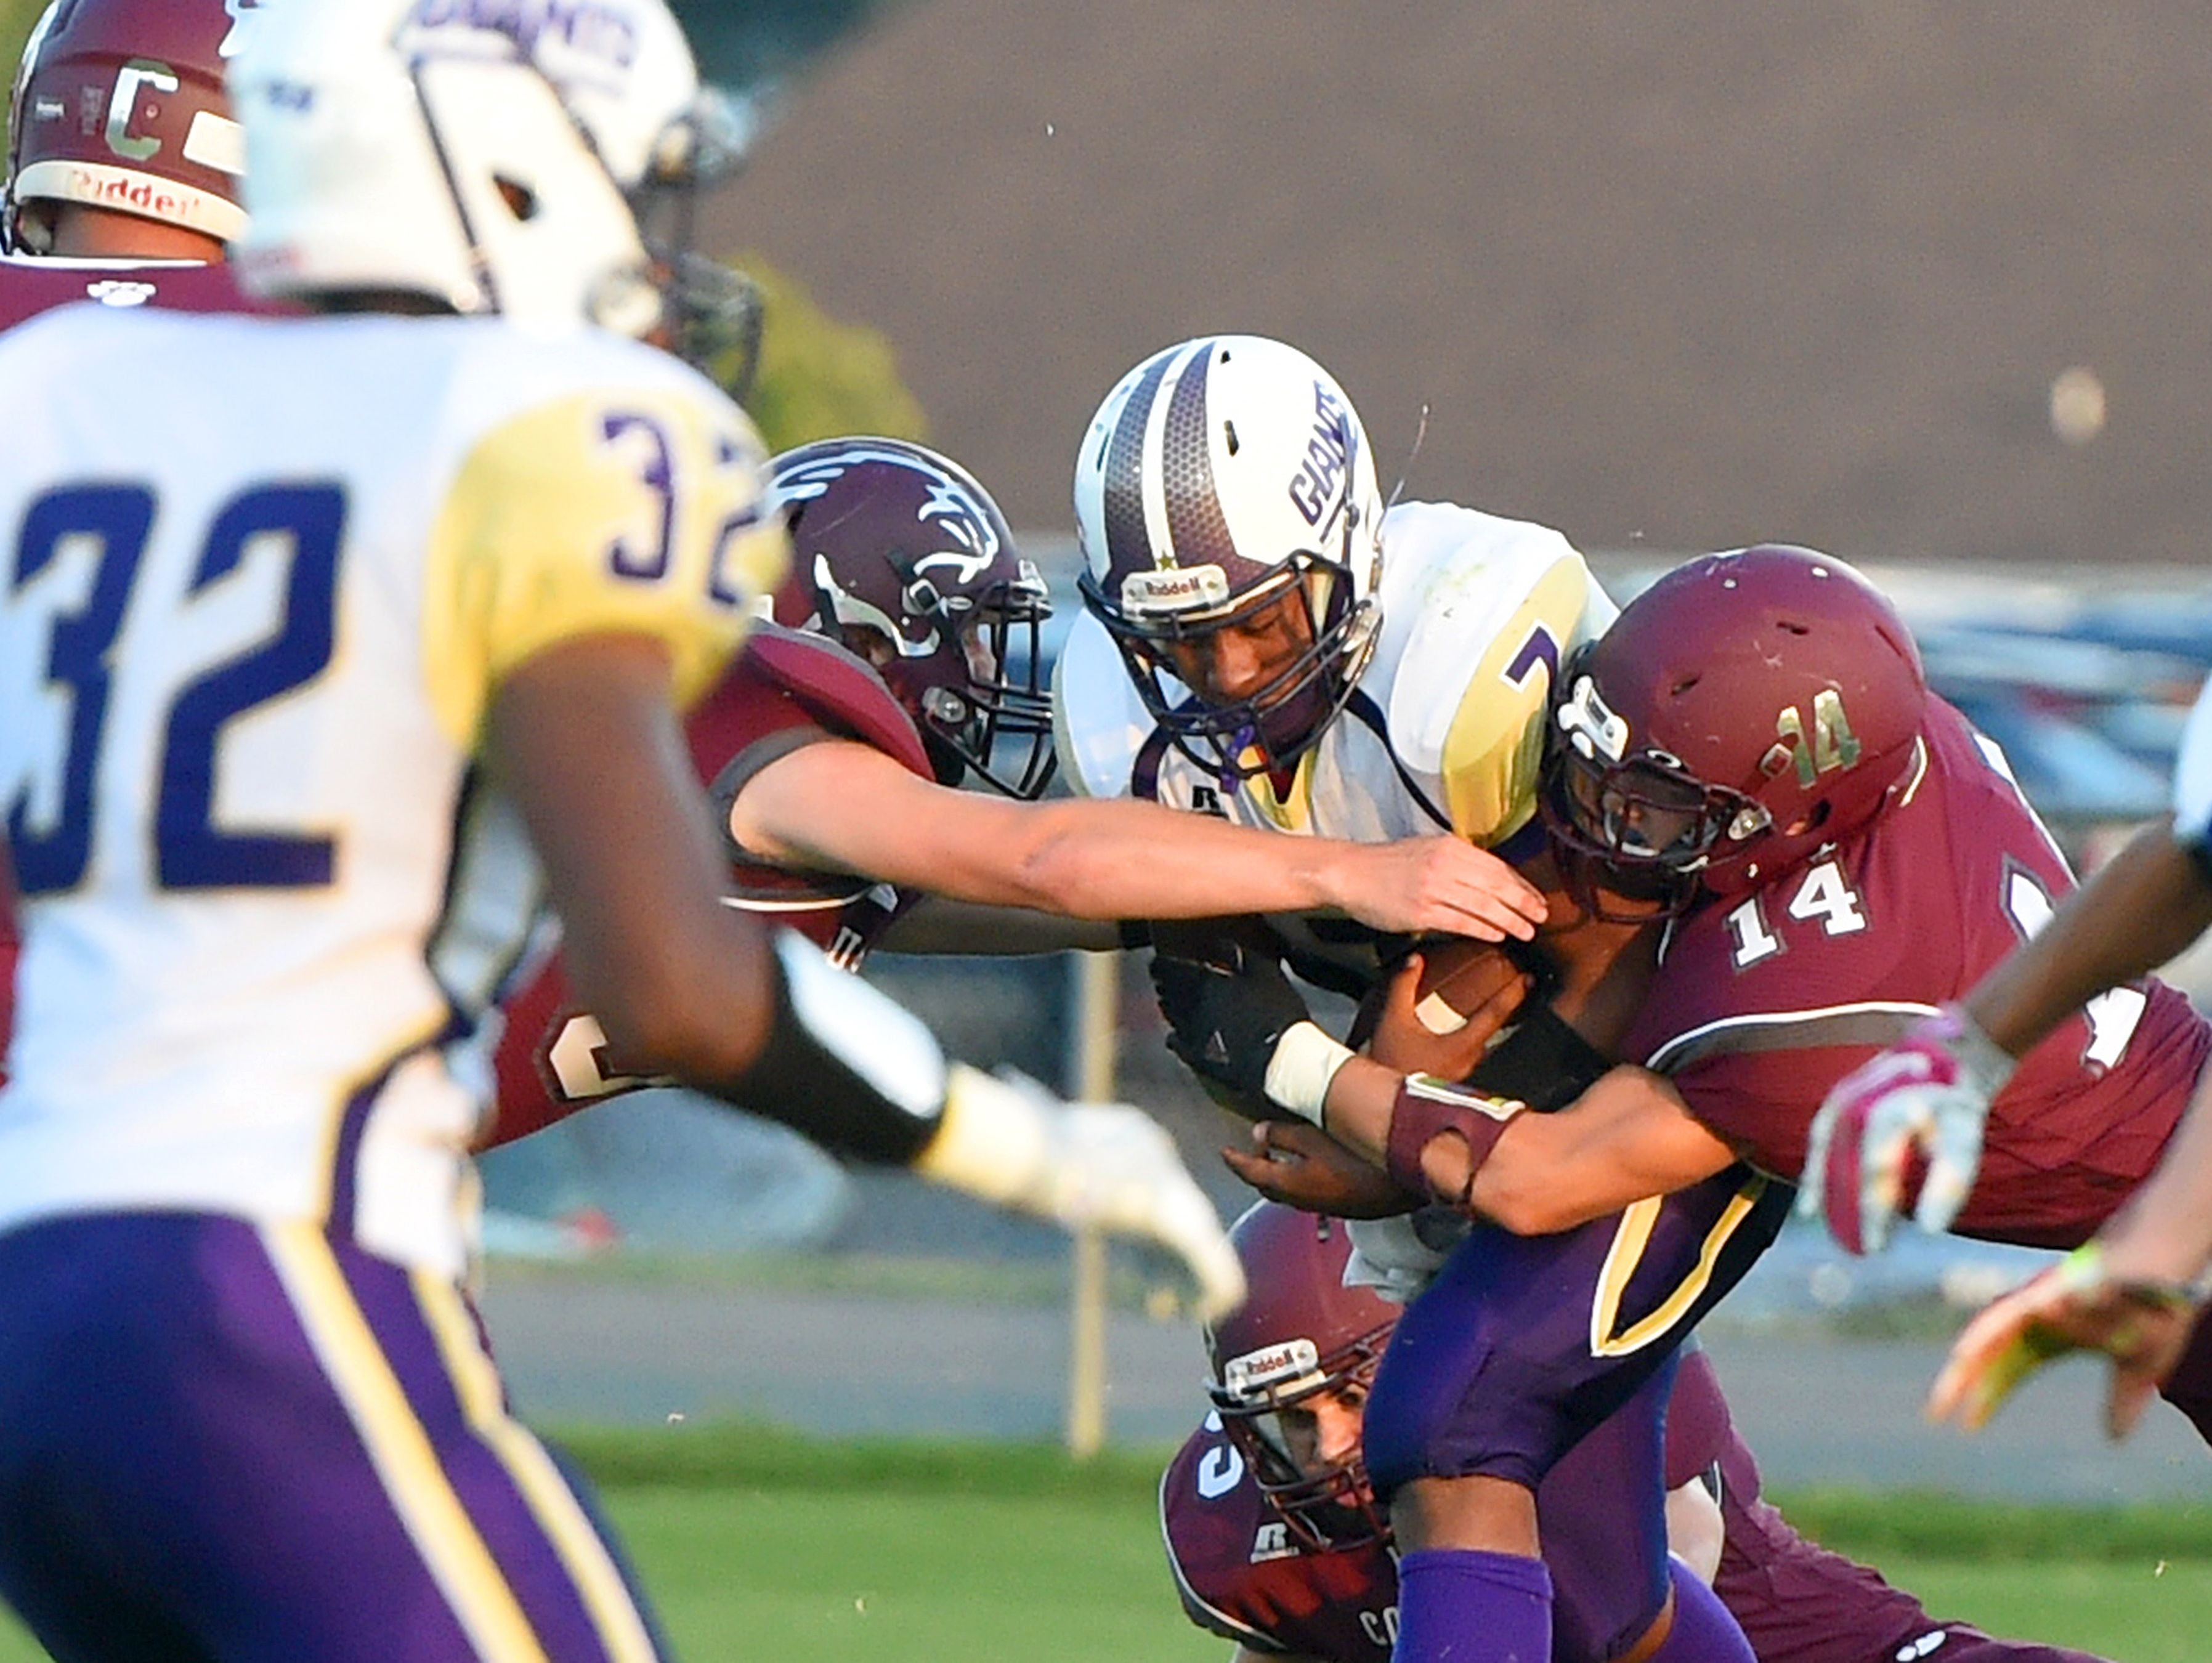 Waynesboro's DaJuan Moore protects the ball as he is wrapped up on either side by the Stuarts Draft defense during a football game played in Stuarts Draft on Friday, Sept. 9, 2016.